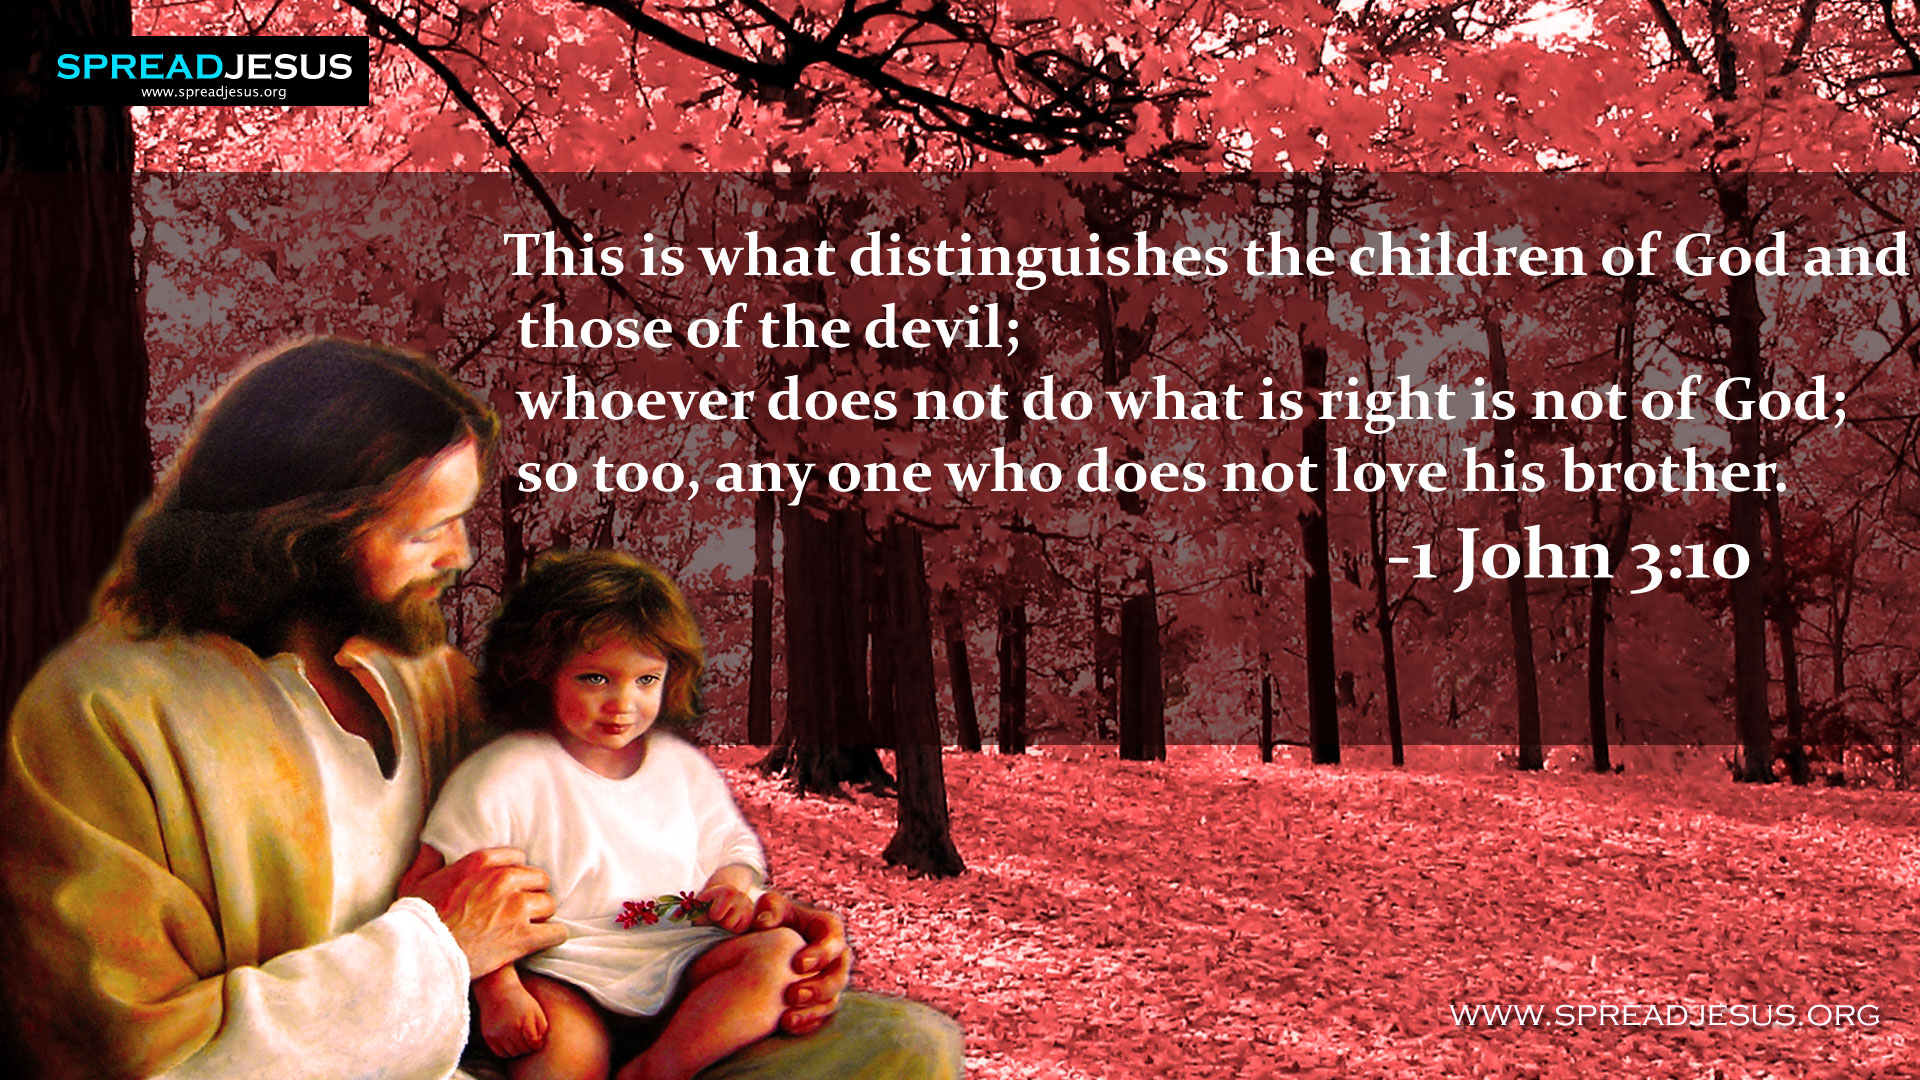 Jesu christ with children wallpapers BIBLE QUOTES-The children of God-This is what distinguishes the children of God and those of the devil; whoever does not do what is right is not of God; so too, any one who does not love his brother. -1 John 3:10